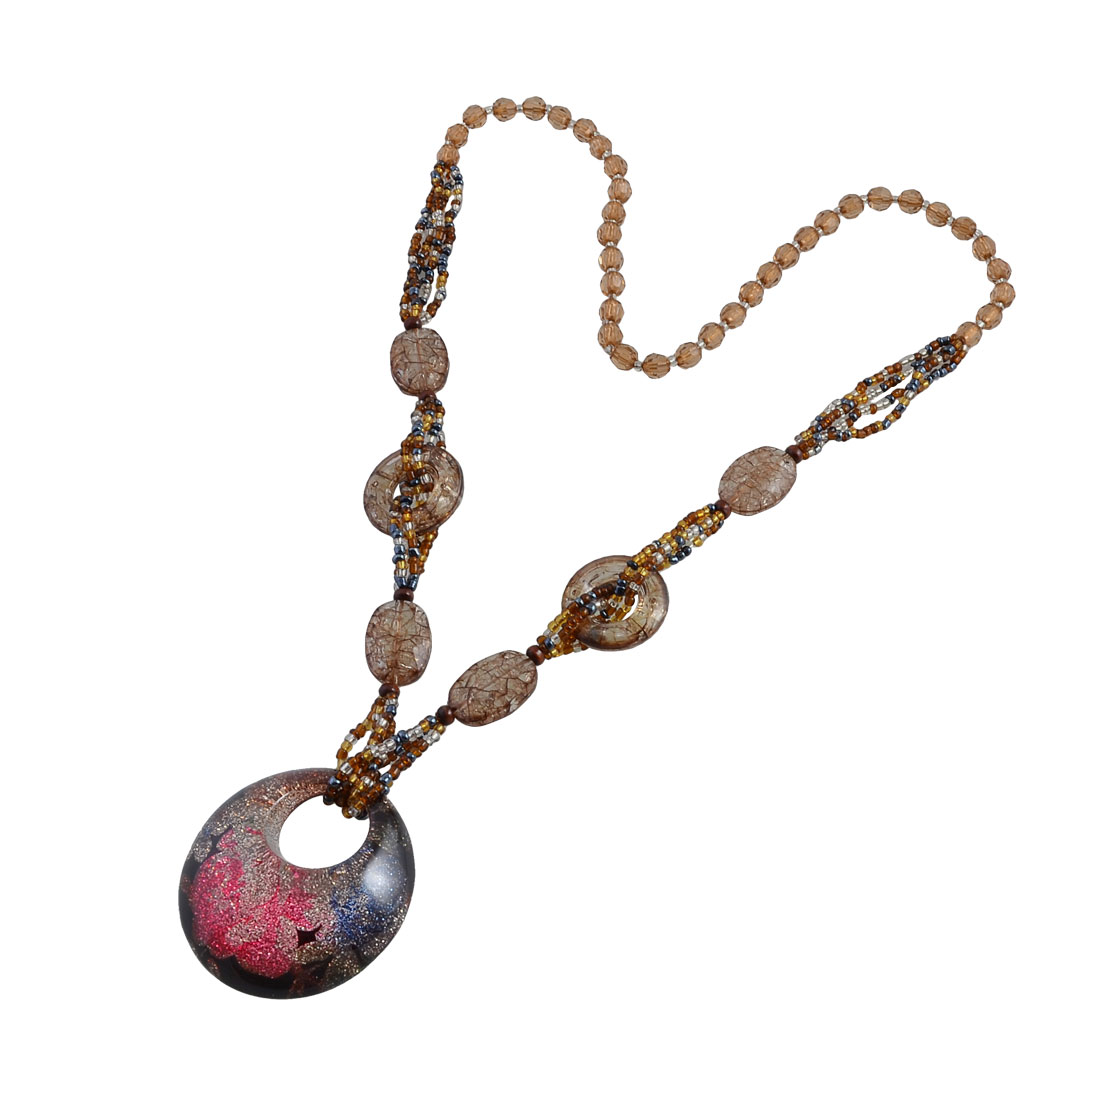 Faceted Beads Colorful Glittery Powder Round Pendant Sweater Necklace for Lady